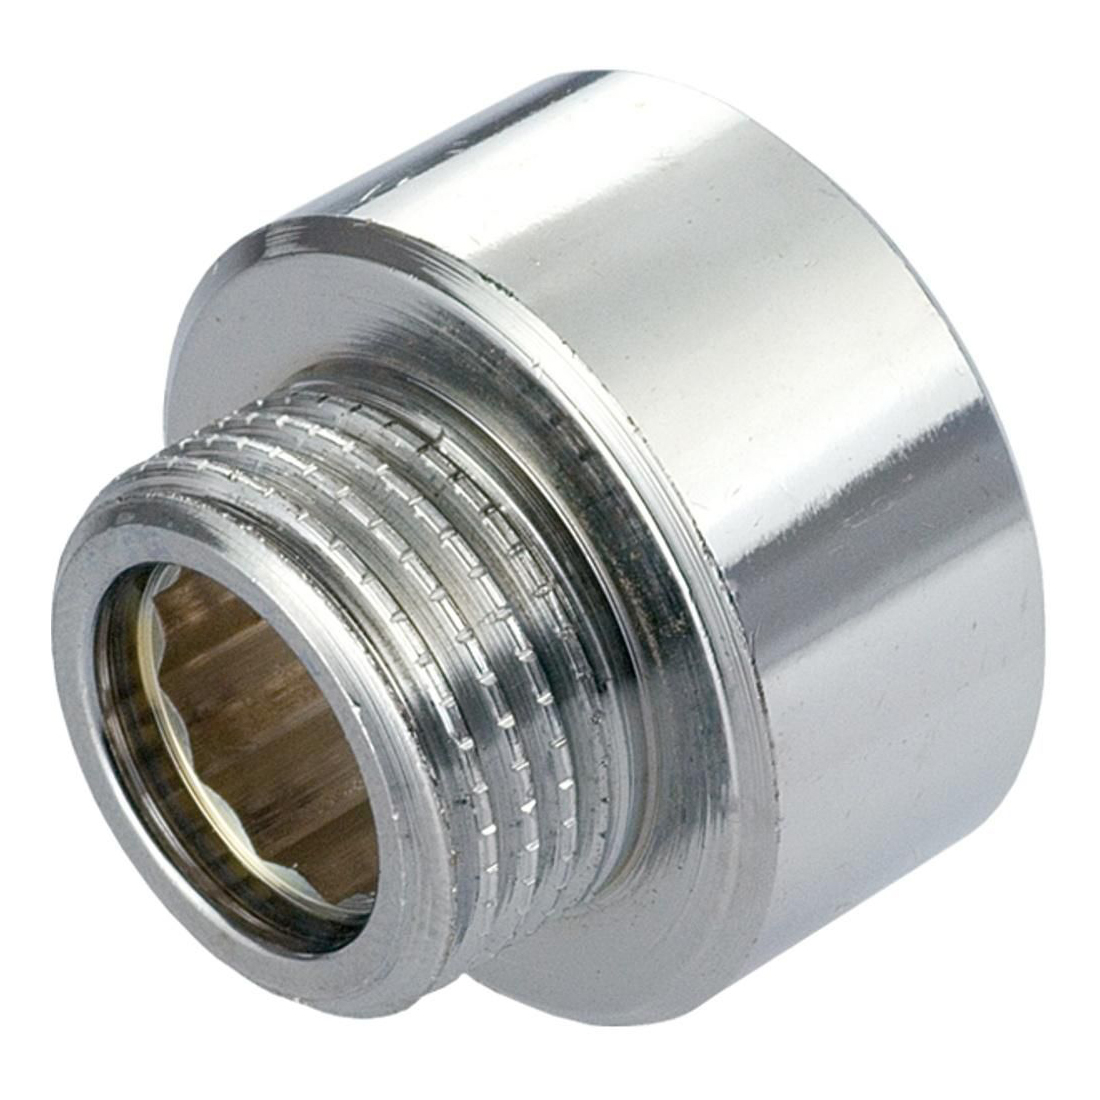 1/2x3/8 Inch Pipe Thread Reducer Connection Female x Male Fittings Chrome